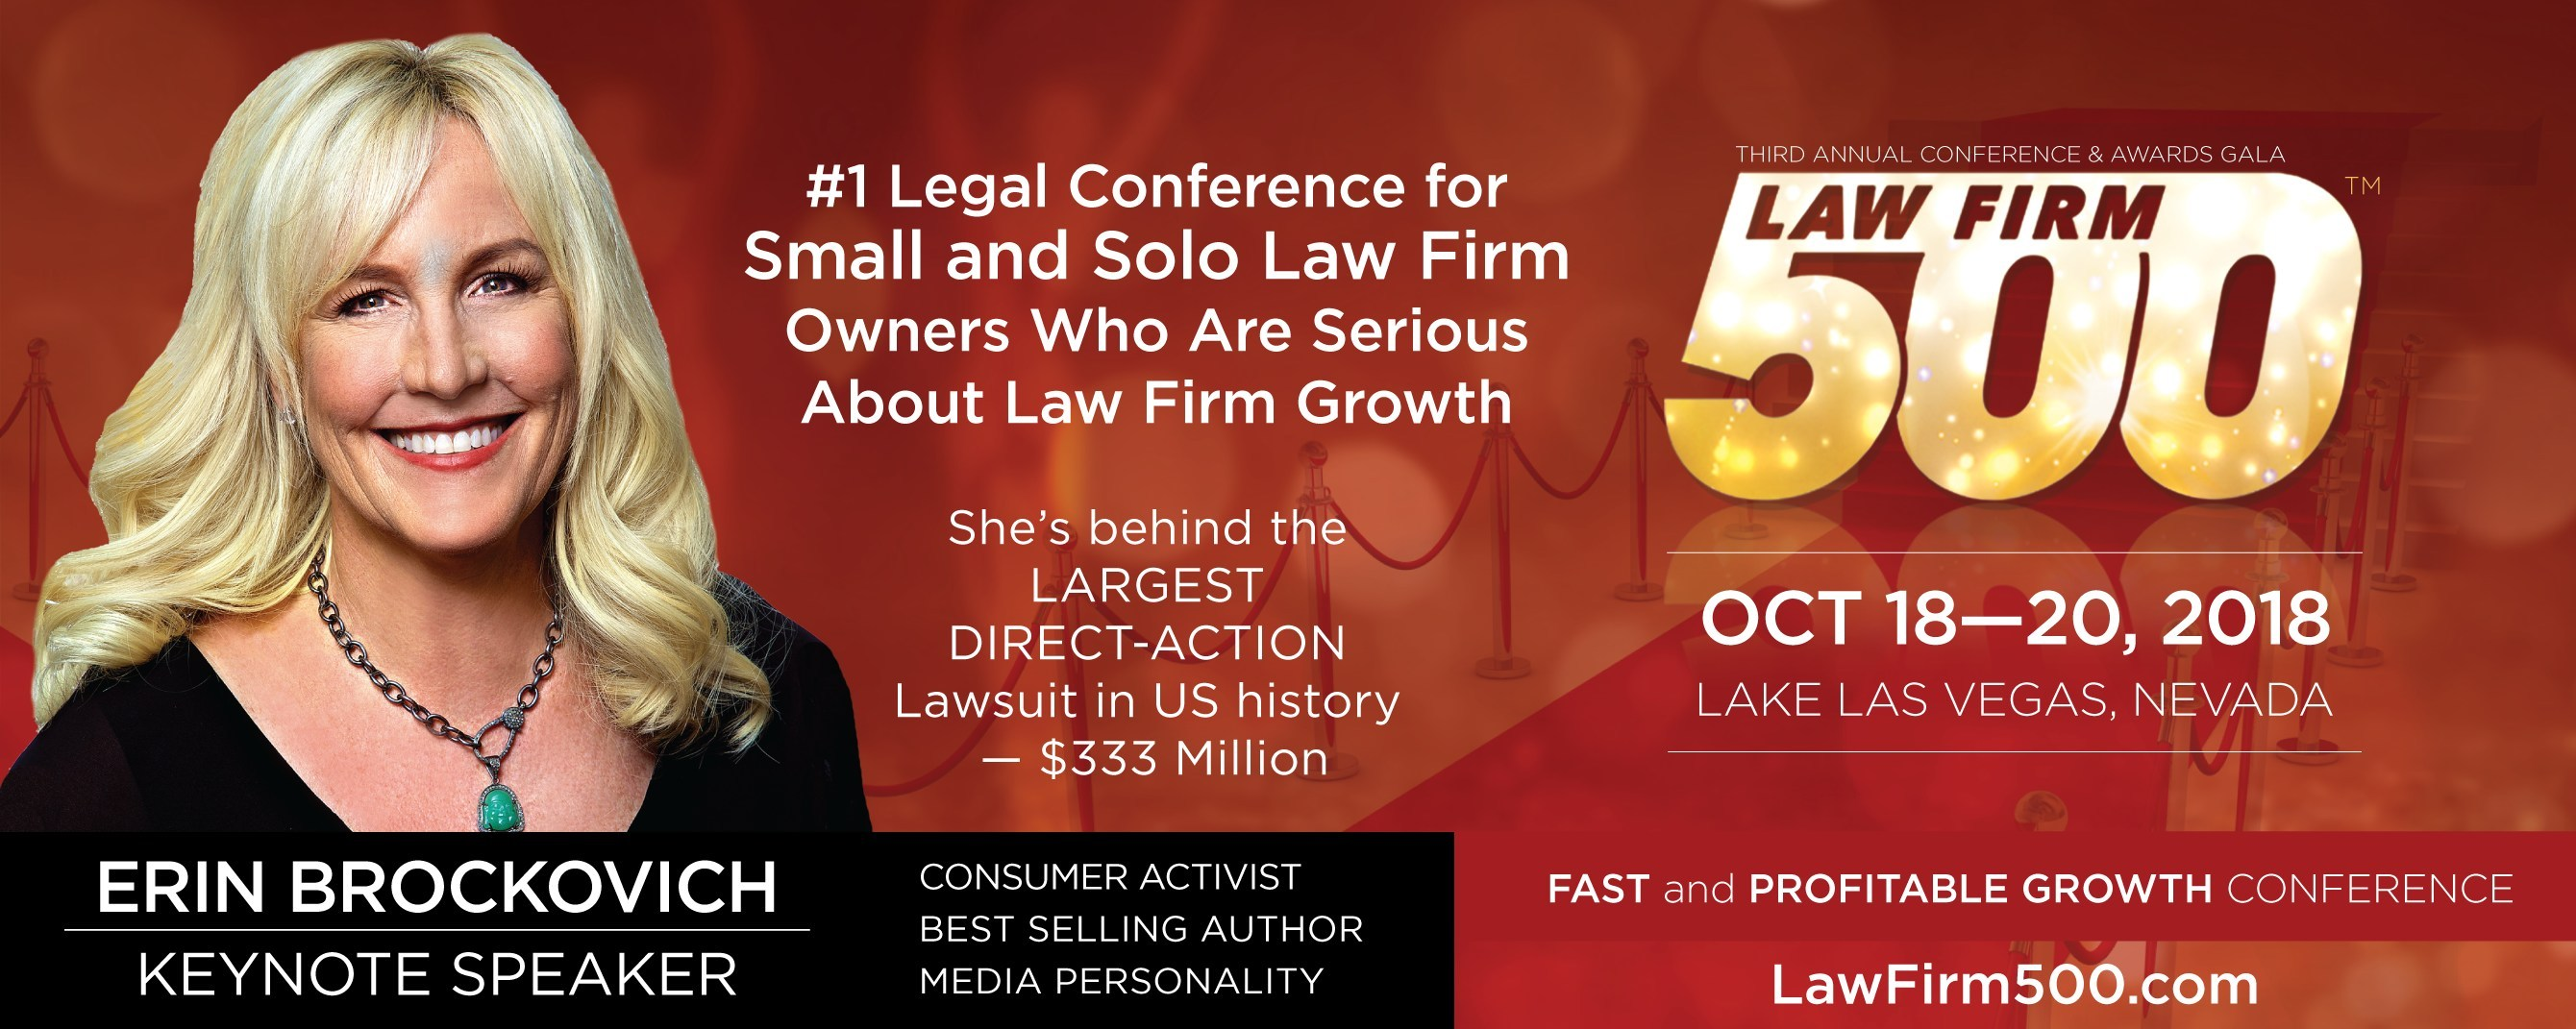 "Law Firm 500 ""FAST and PROFITABLE GROWTH"" Conference & Awards Gala, the most prestigious event in the legal industry. Oct 18-20, 2018 - Westin Lake Las Vegas Resort & Spa. Keynote is Legal Legend, NY Times Best-Selling Author and fierce consumer activist, Erin Brockovich who will speak about the POWER of ONE. Fifteen powerful industry leaders will speak in all facets of growing a successful law firm - management, marketing, finance, technology and client services www.lawfirm500.com"